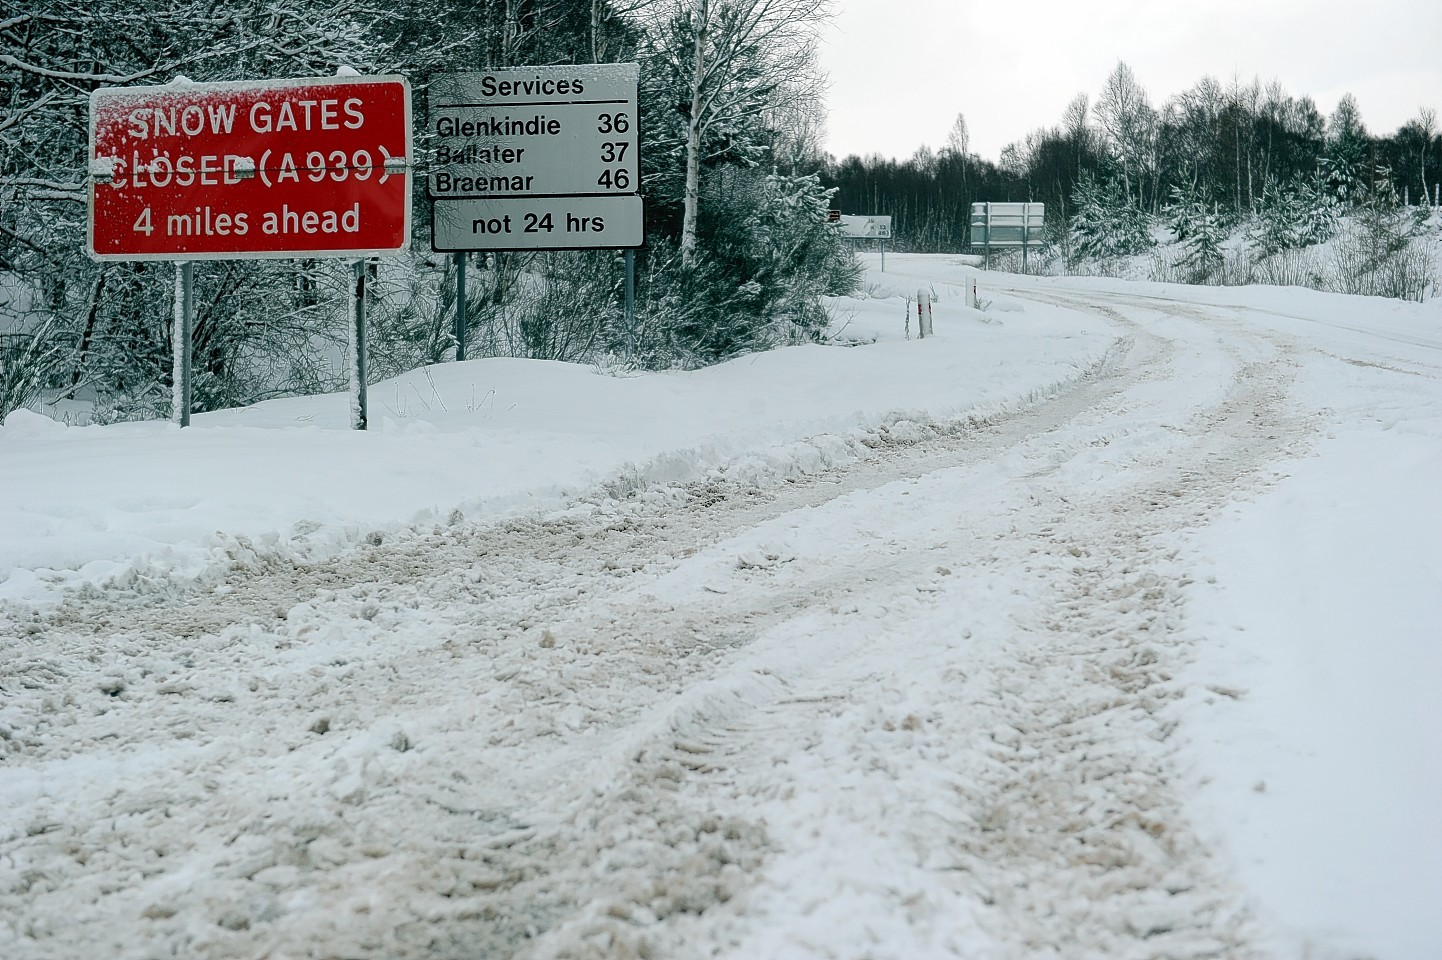 Winter weather is affecting roads